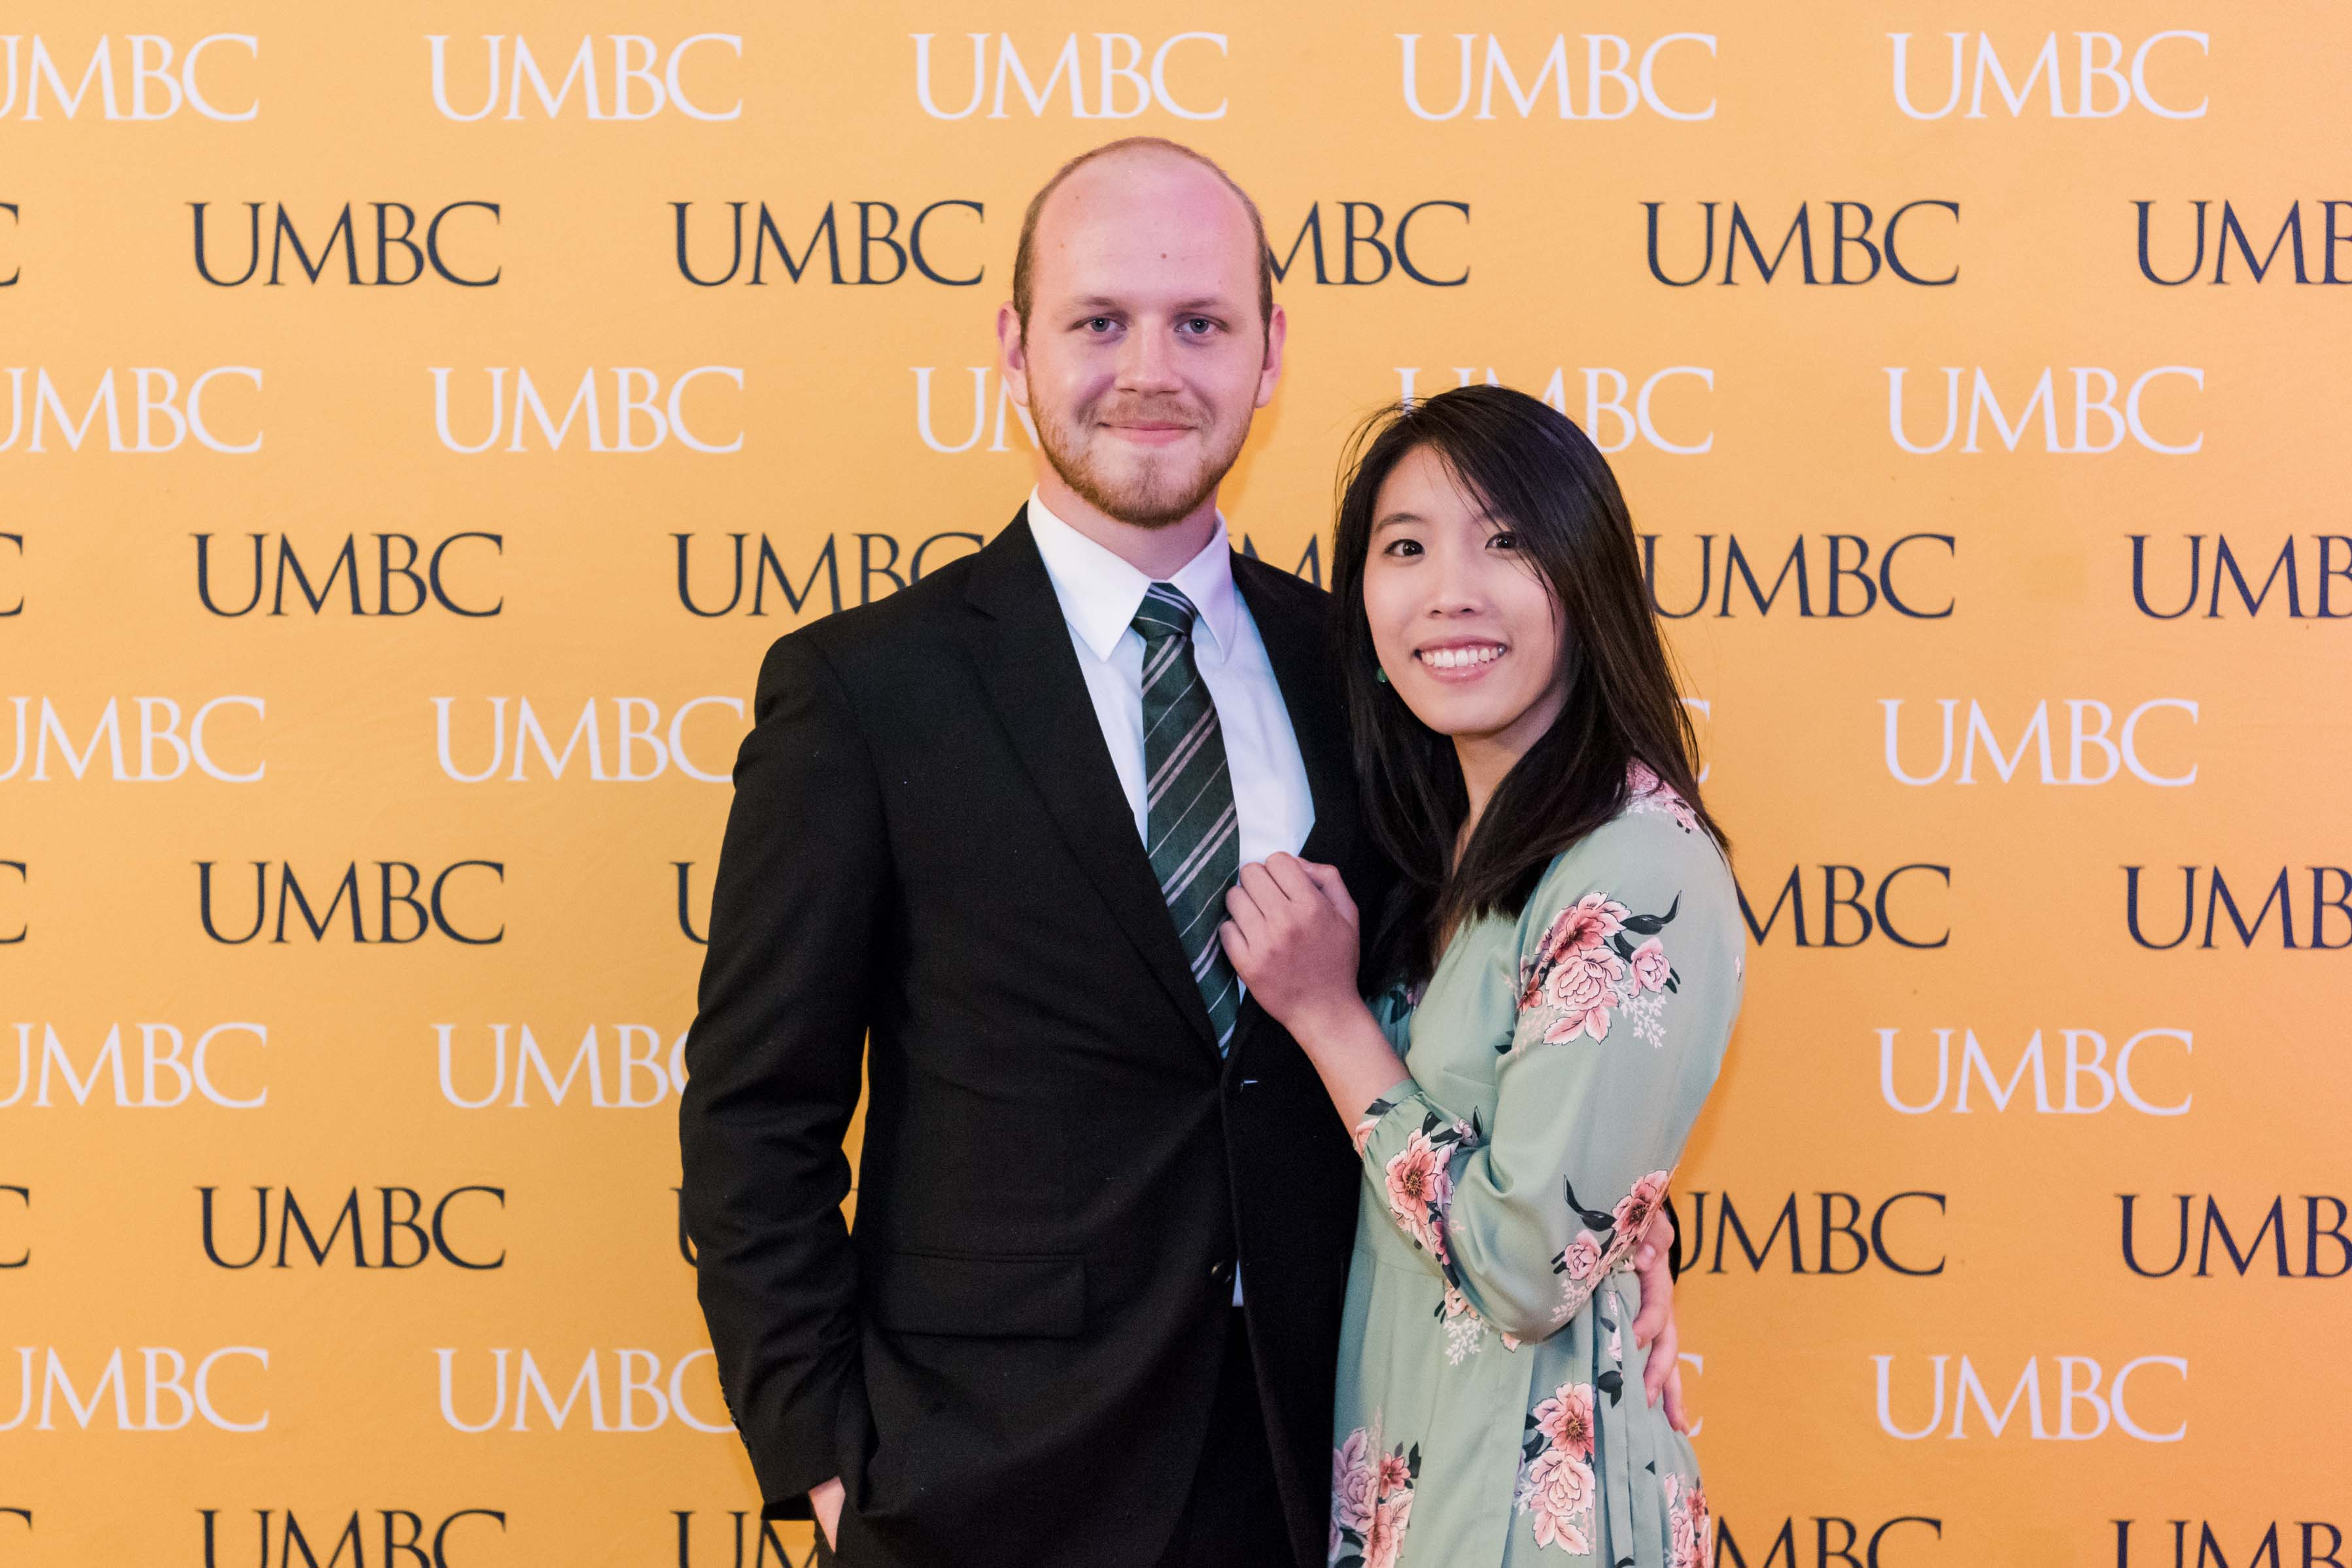 Couple pose at UMBC wall for CYA wine tasting event